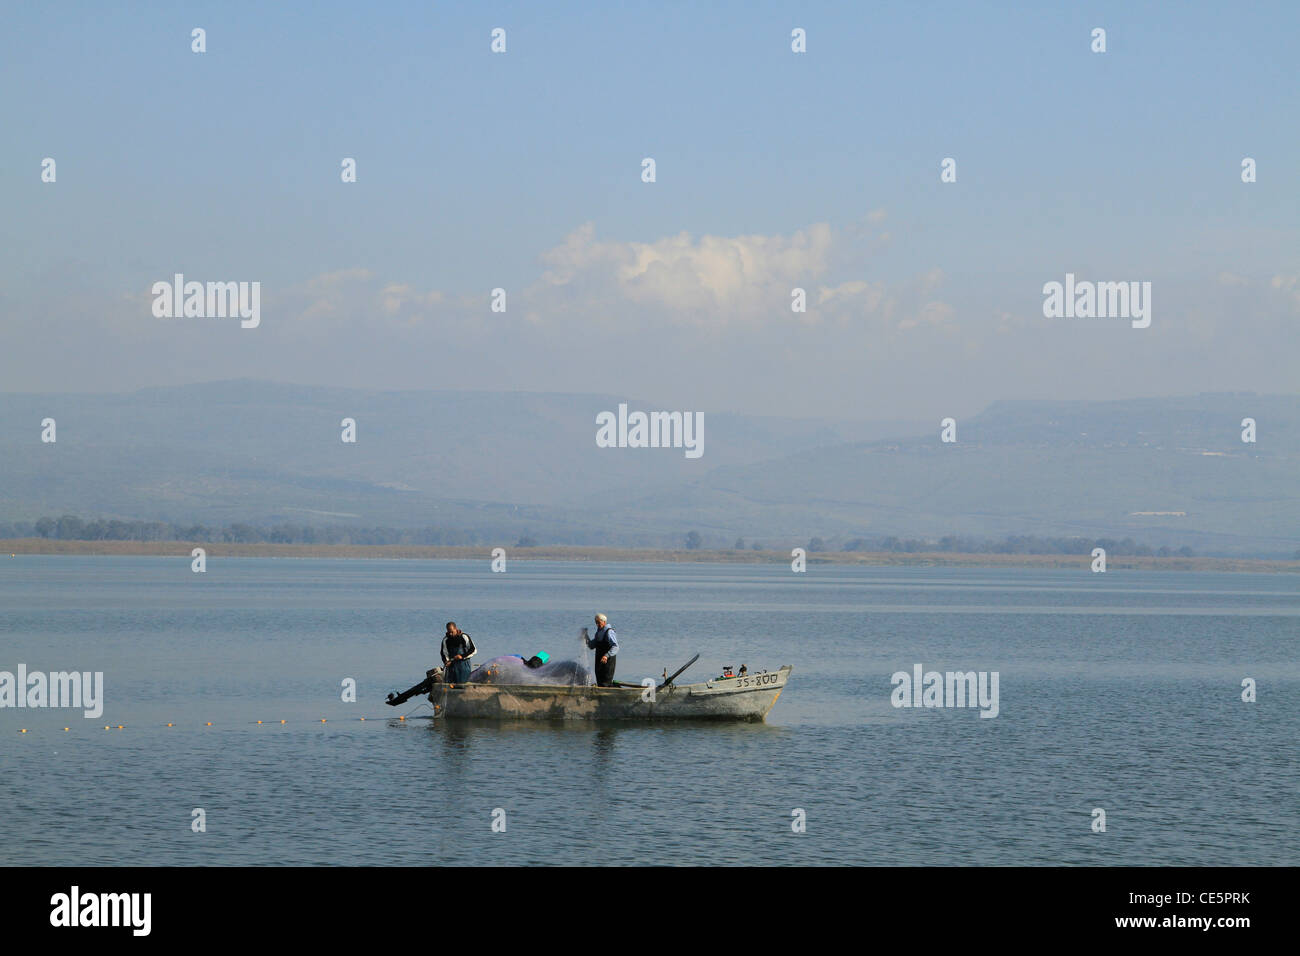 Israel, Sea of Galilee, a fishing boat by the coast of Capernaum Stock Photo